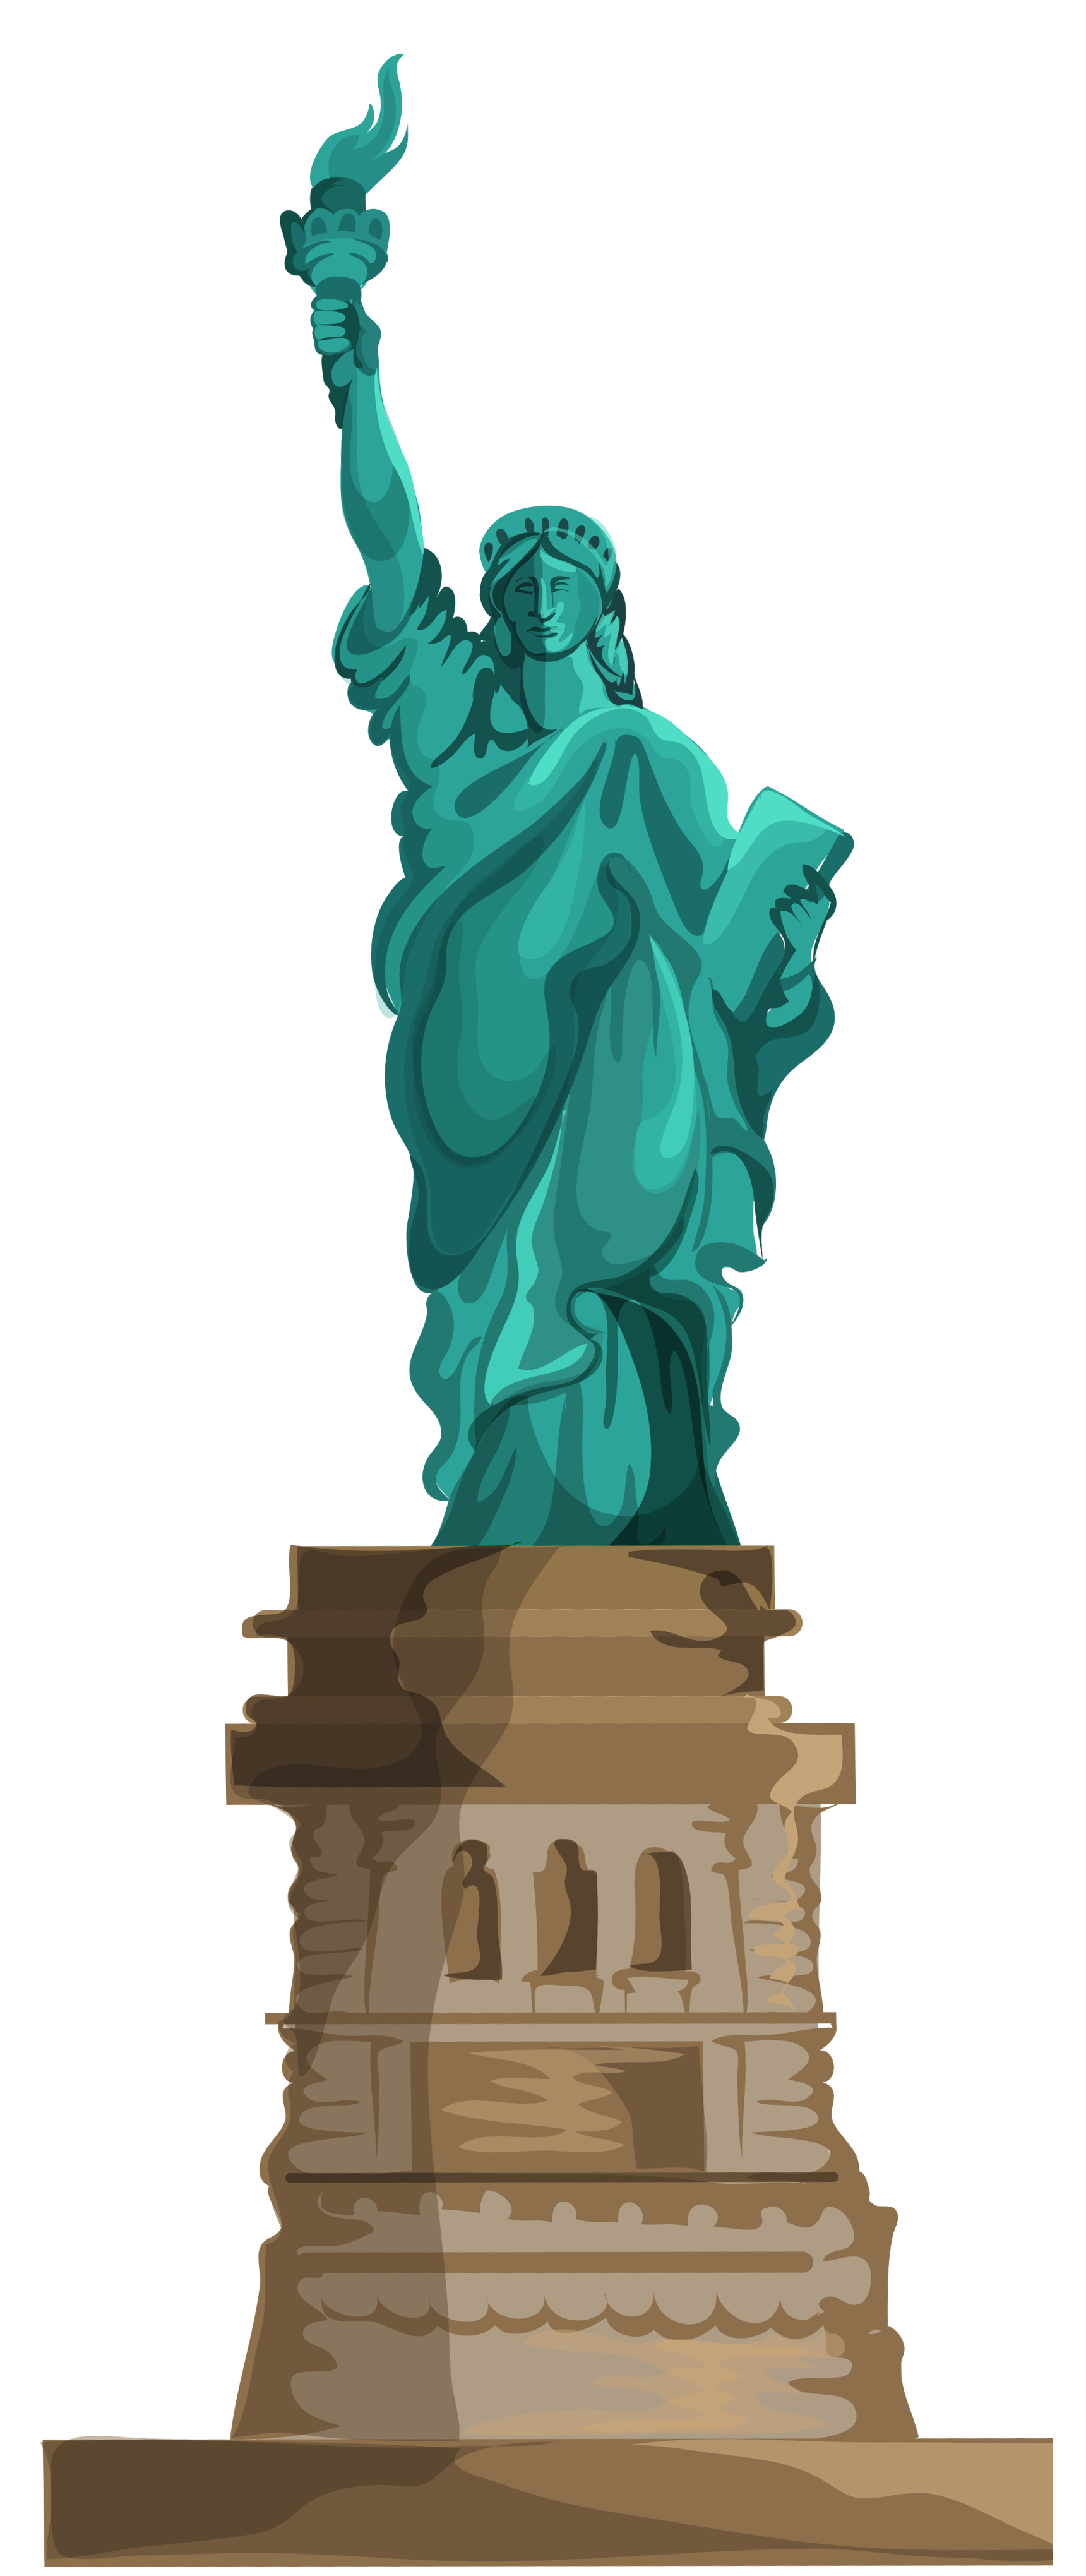 Liberty clipart clear. Figurine background pencil and